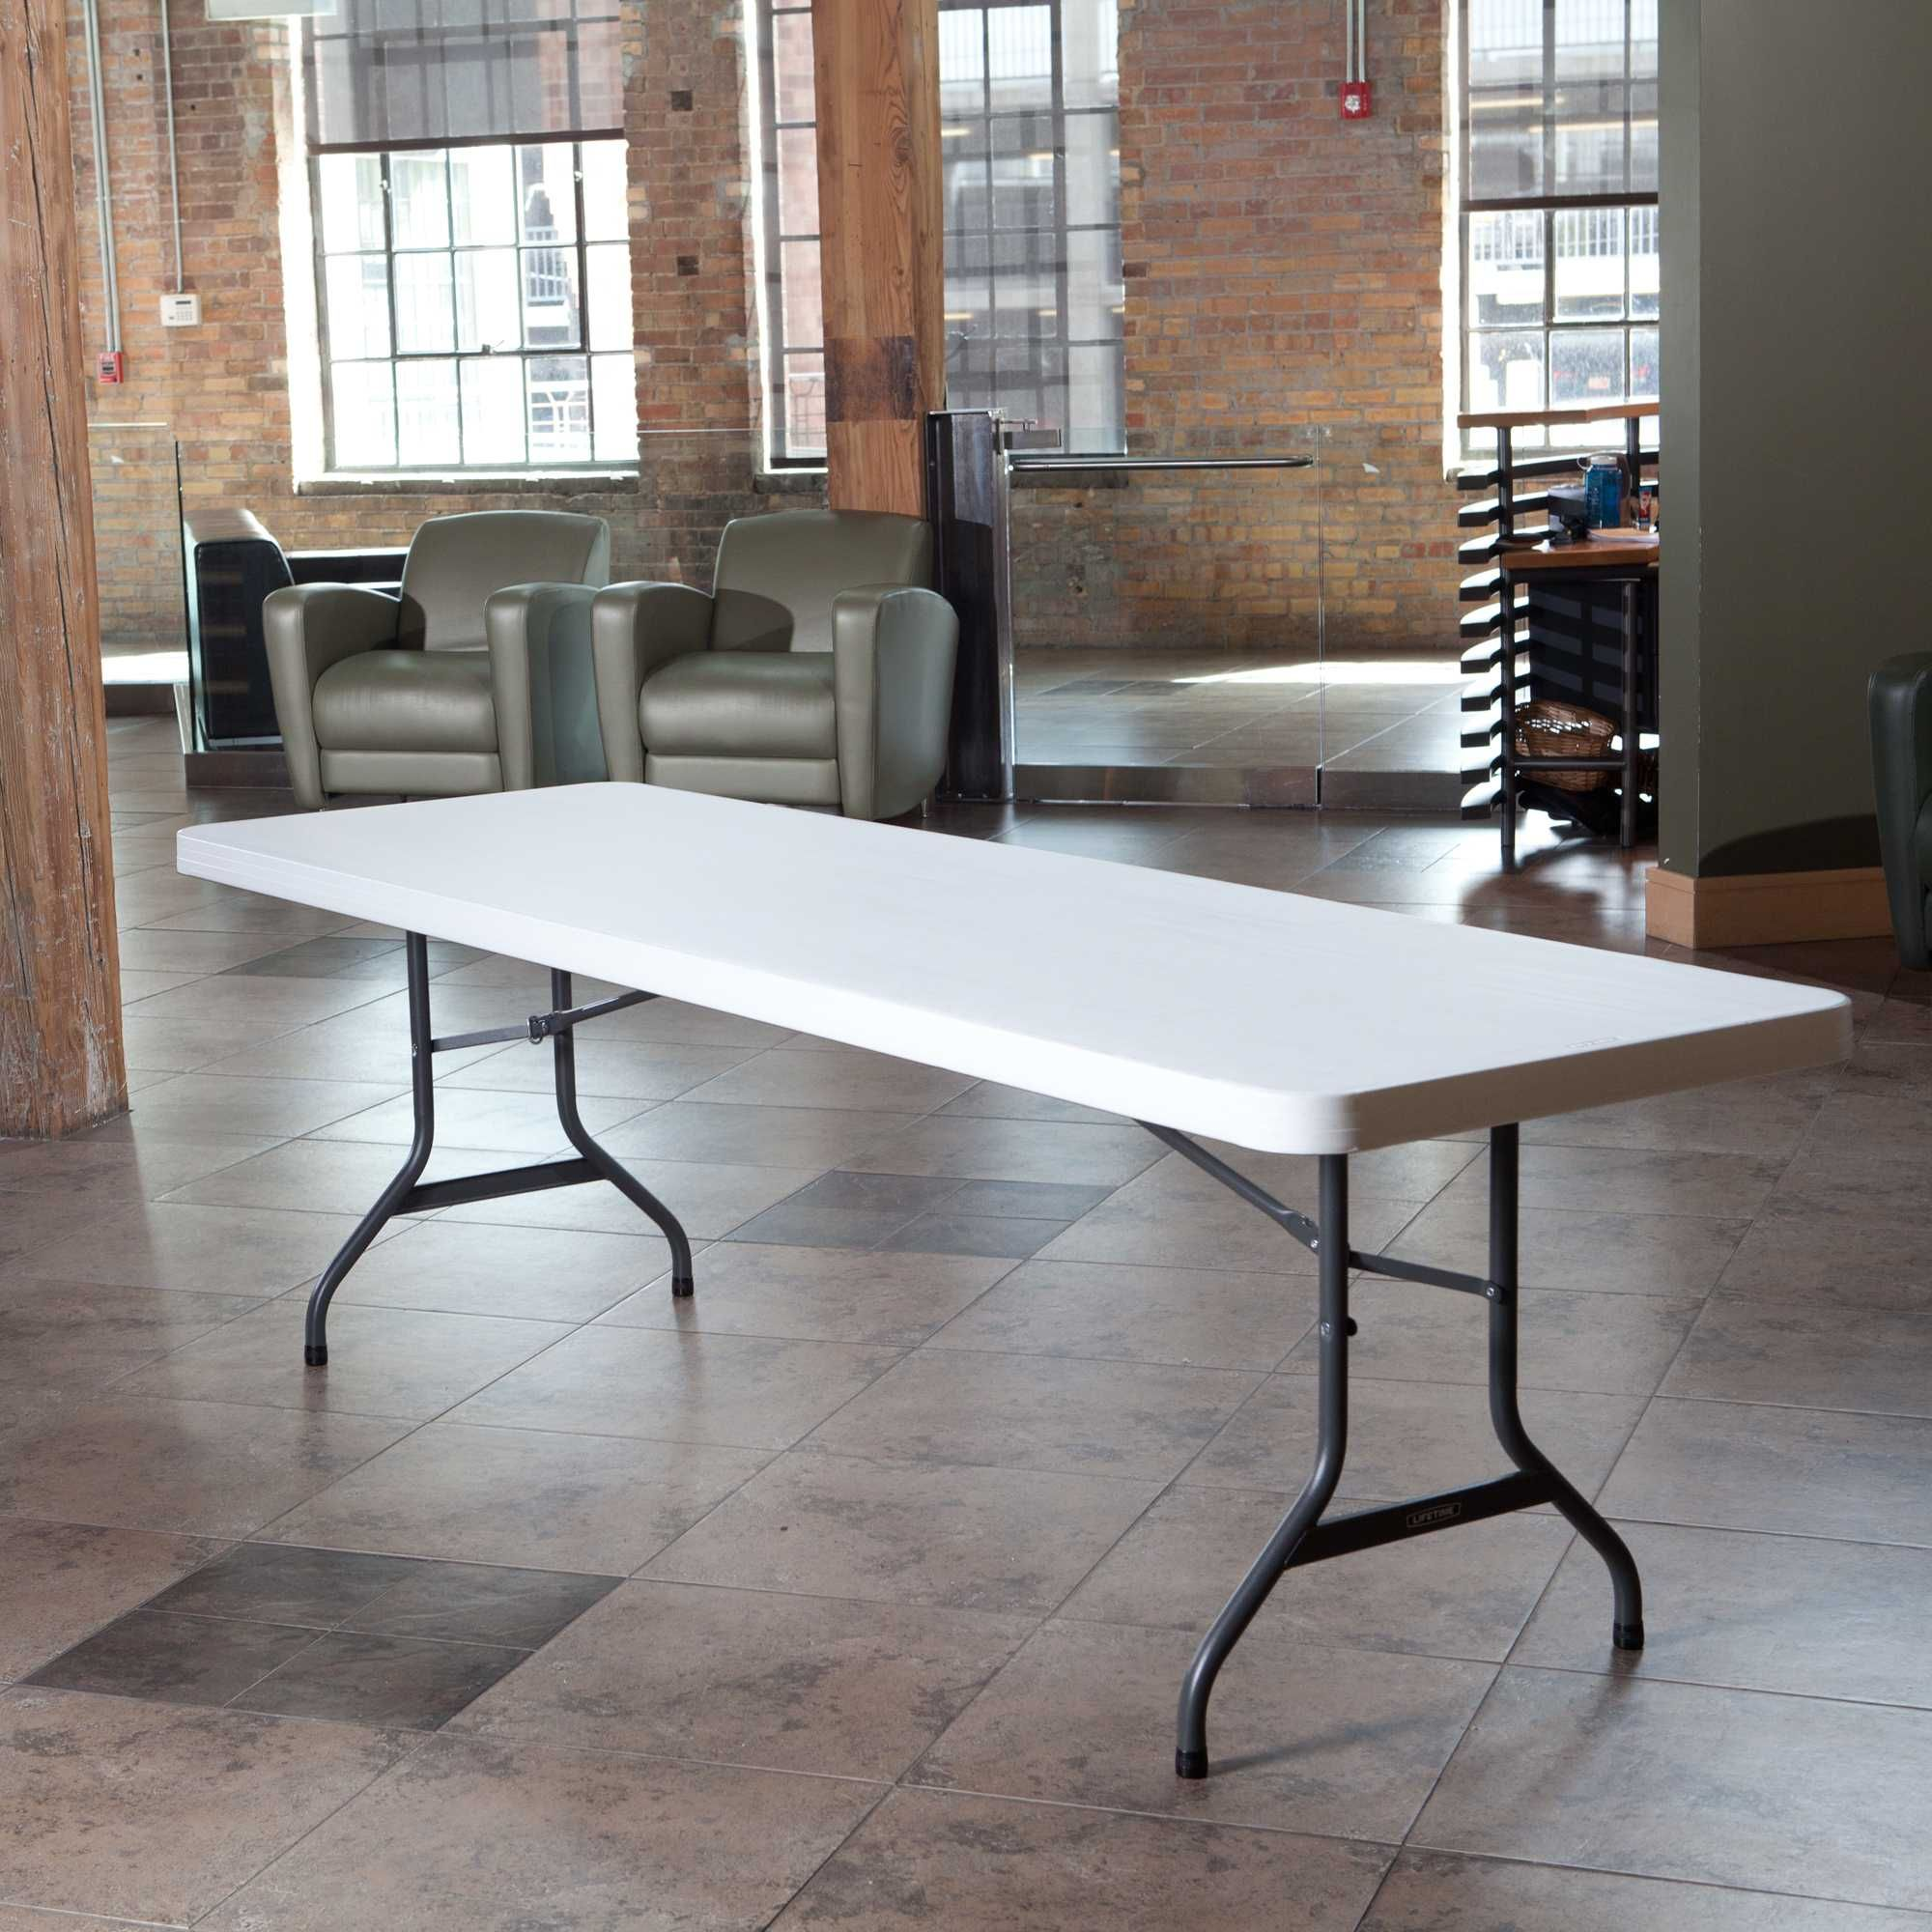 8 ft fold in half table - 2997 Lifetime 8 Foot Commercial Folding Table Features A 96 X 30